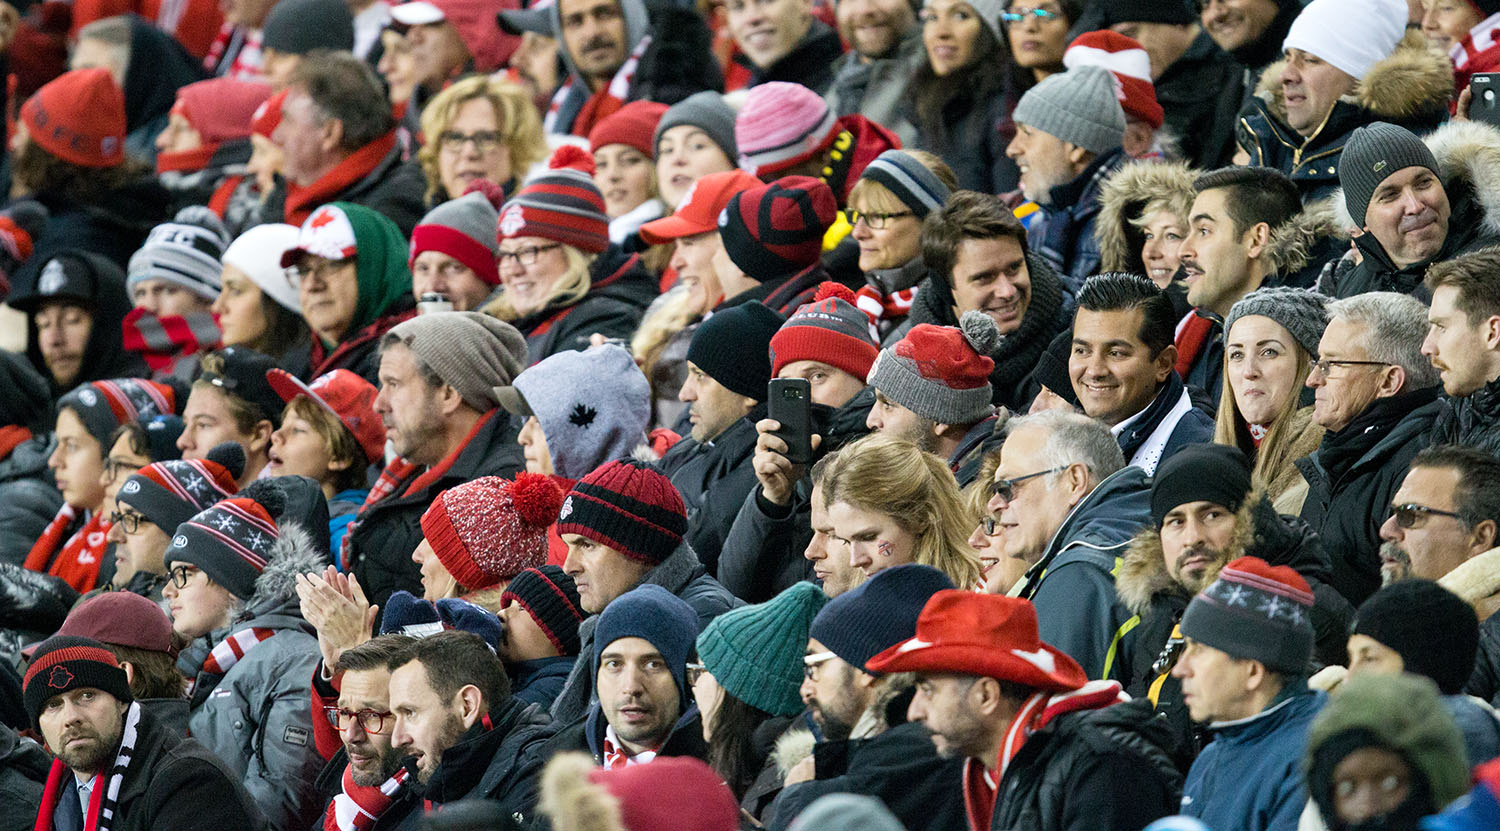 Toronto FC supporters look on in the stands as play continues in the second half of the Eastern Conference Final at BMO Field in 2017.Image by Dennis Marciniak of denMAR Media.